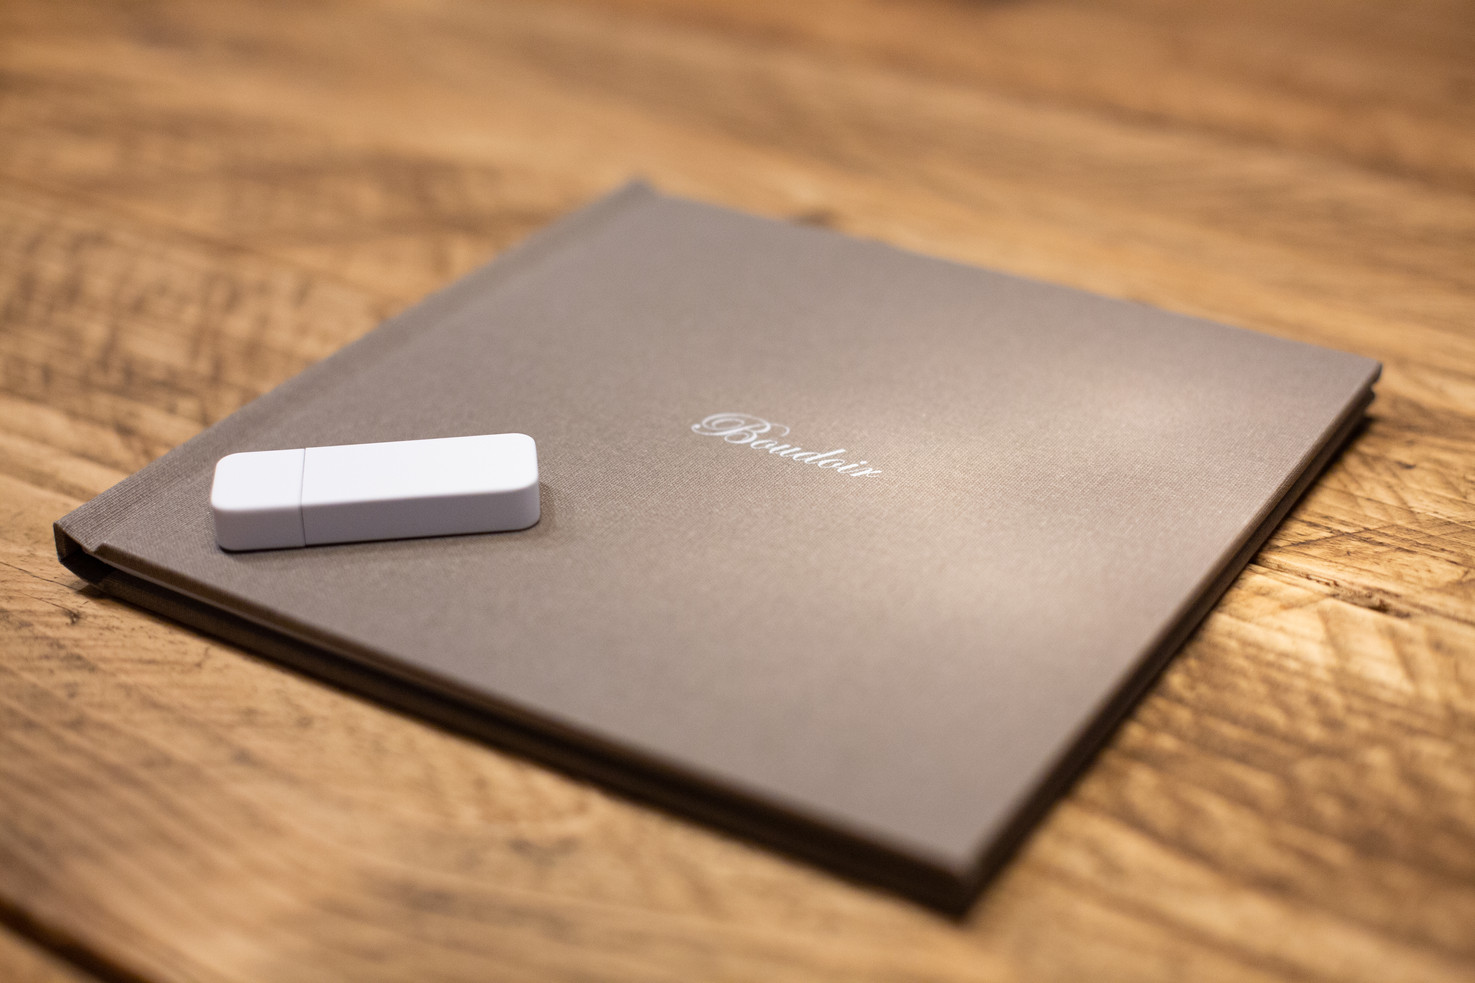 A beautiful momento book and USB